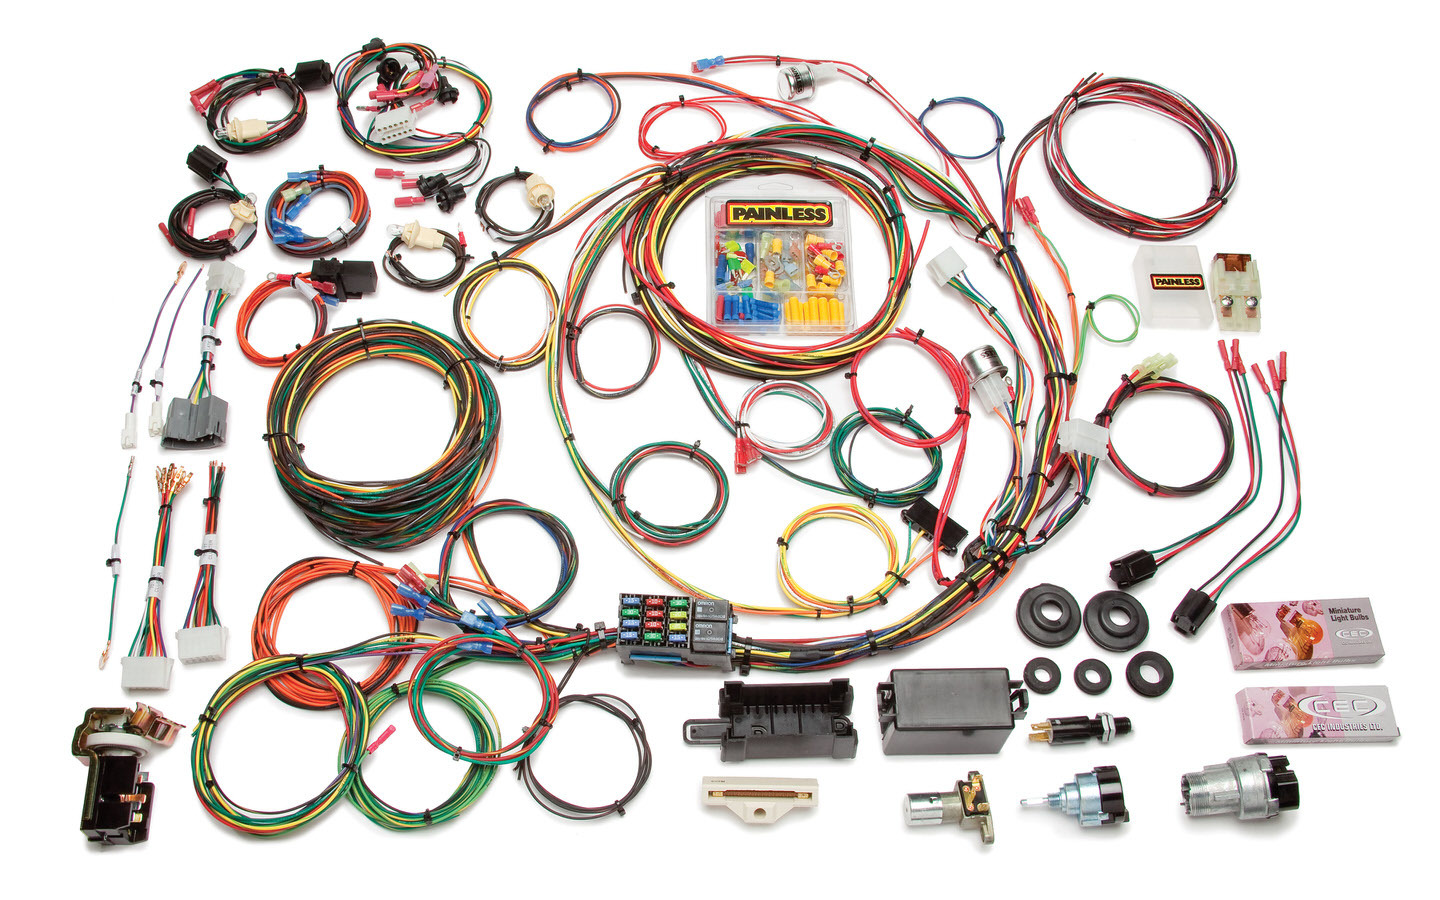 Painless Wiring 10118 Car Wiring Harness, Direct Fit, Complete, 21 Circuit, Switches, Ford Fullsize Truck 1967-77, Kit